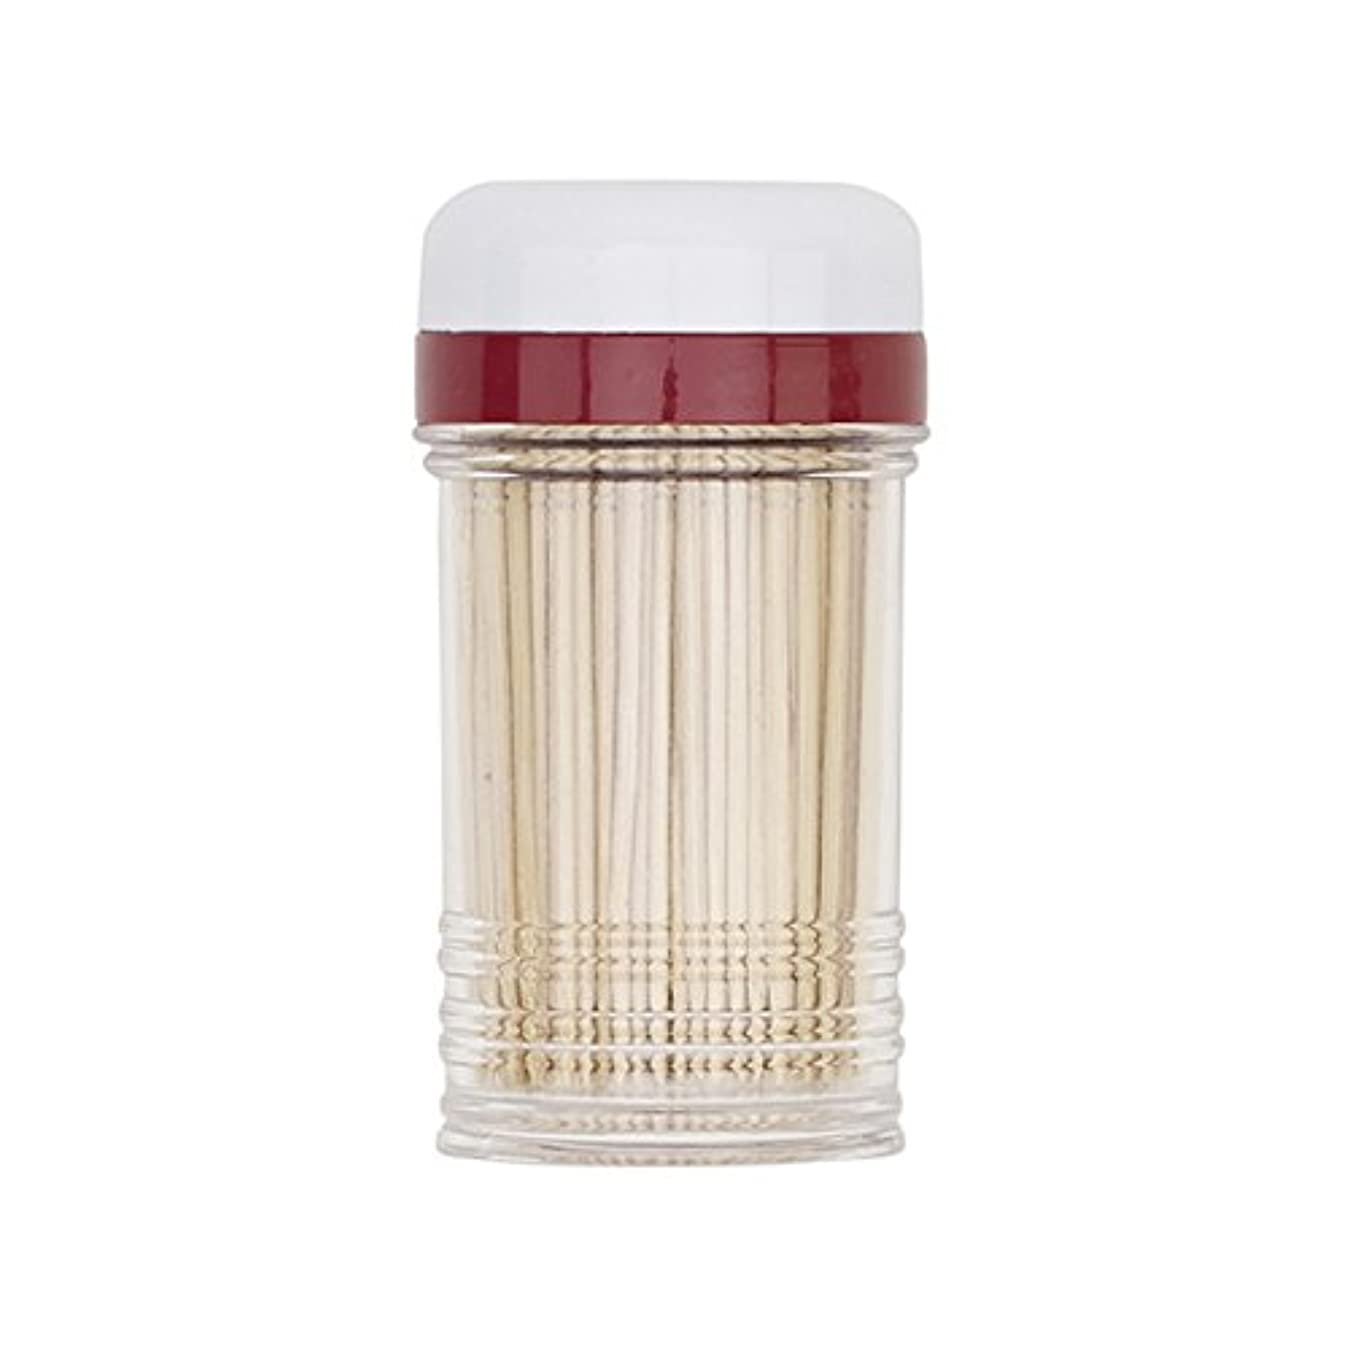 Good Cook Touch Shake-A-Pick Toothpick Dispenser